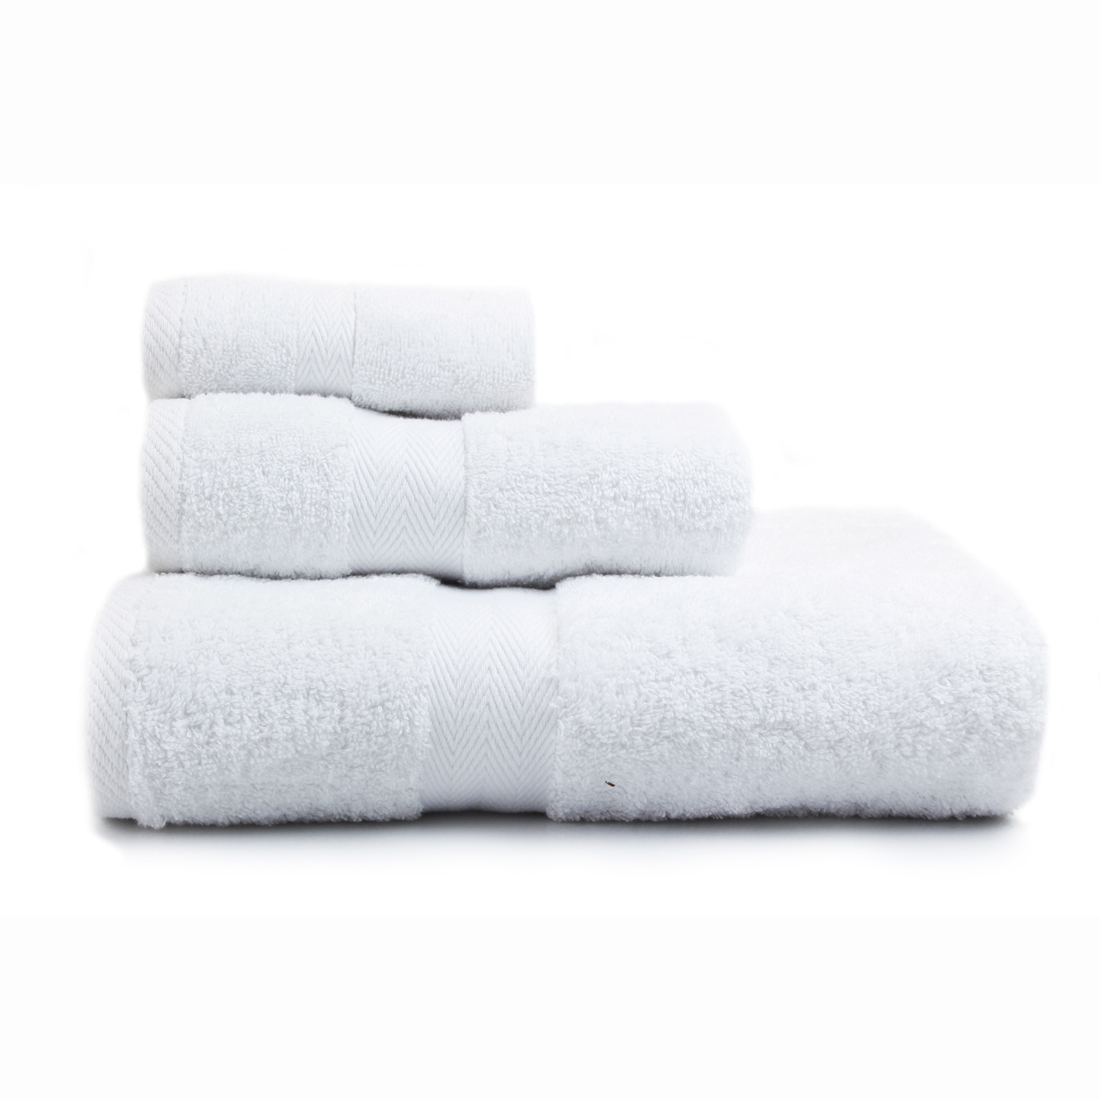 Luxor White Towels